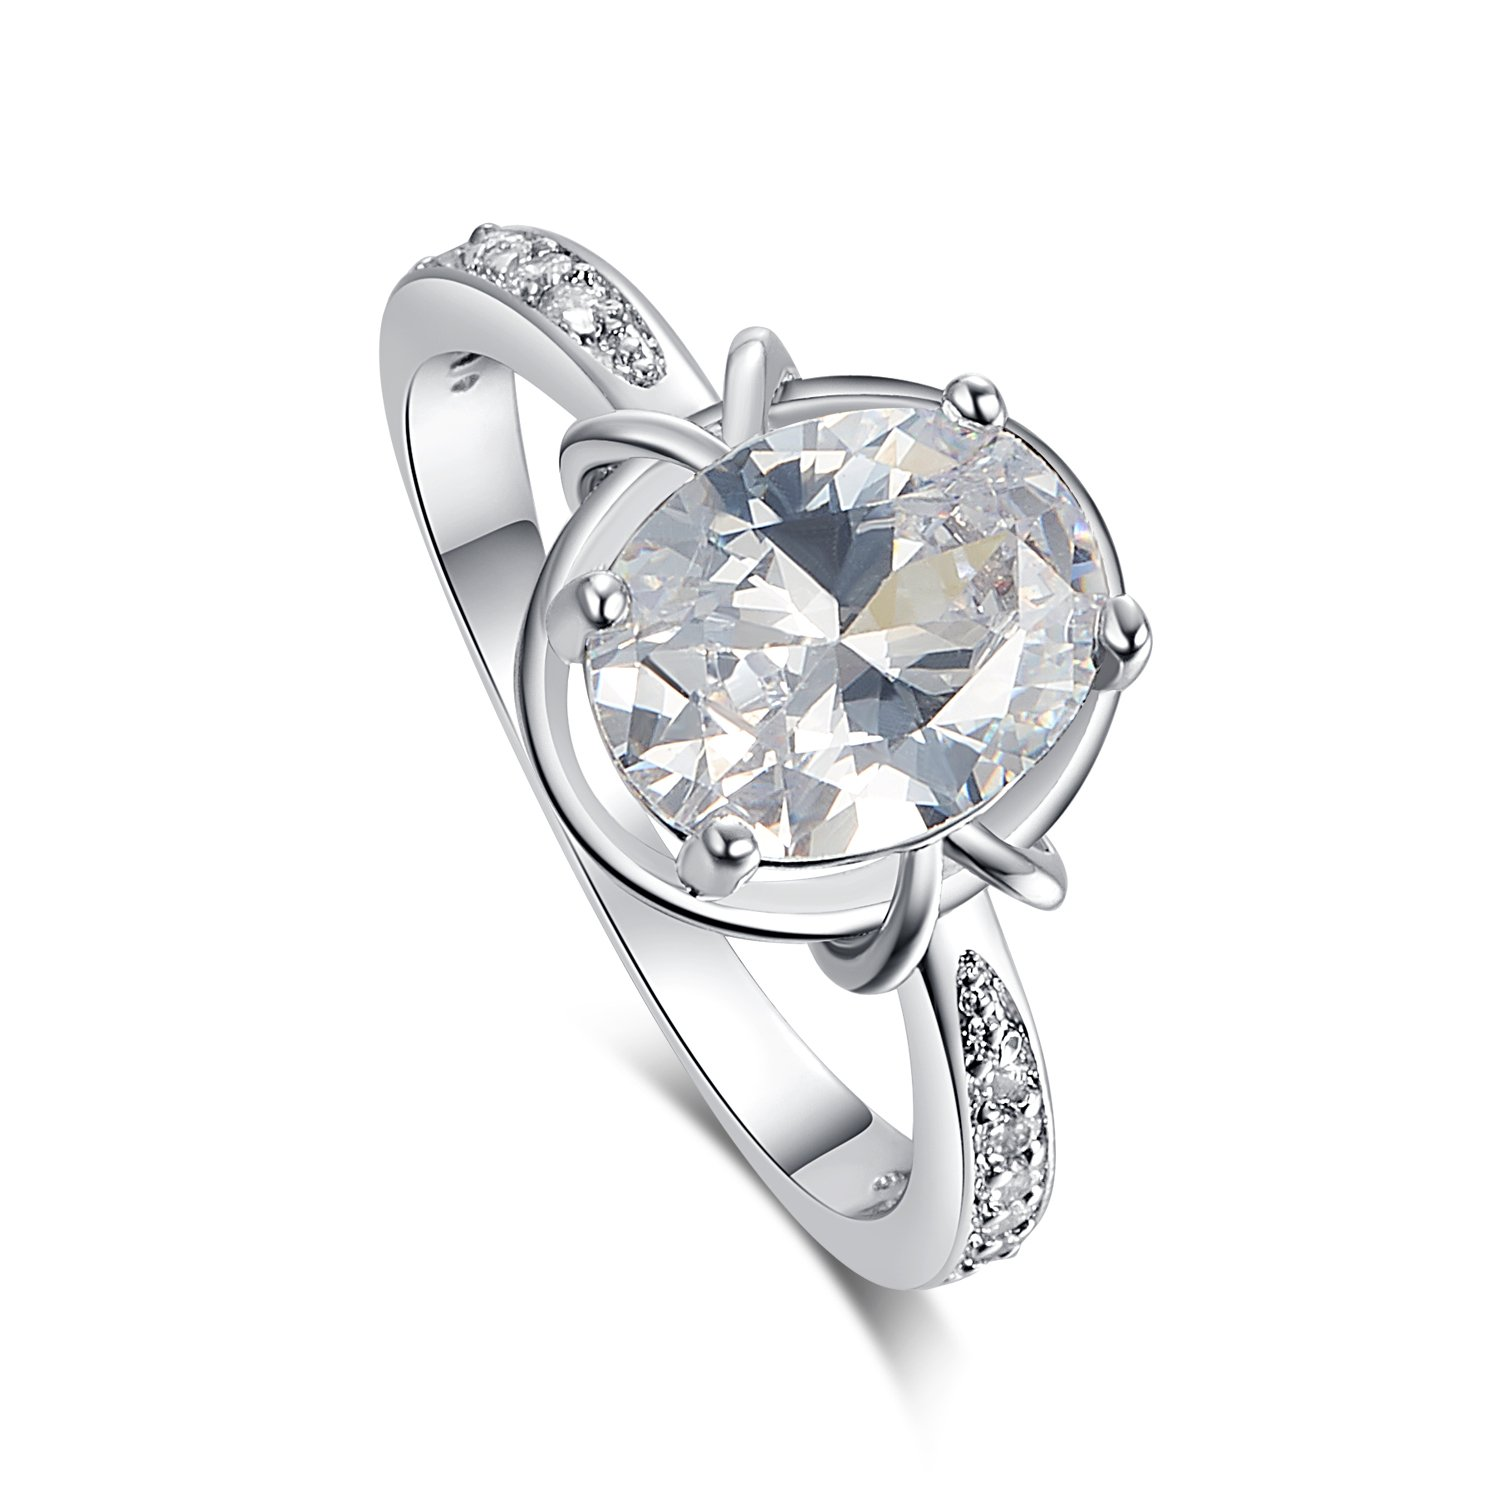 Psiroy 925 Sterling Silver Oval Cut Created White Topaz Filled Anniversary Ring Size 9